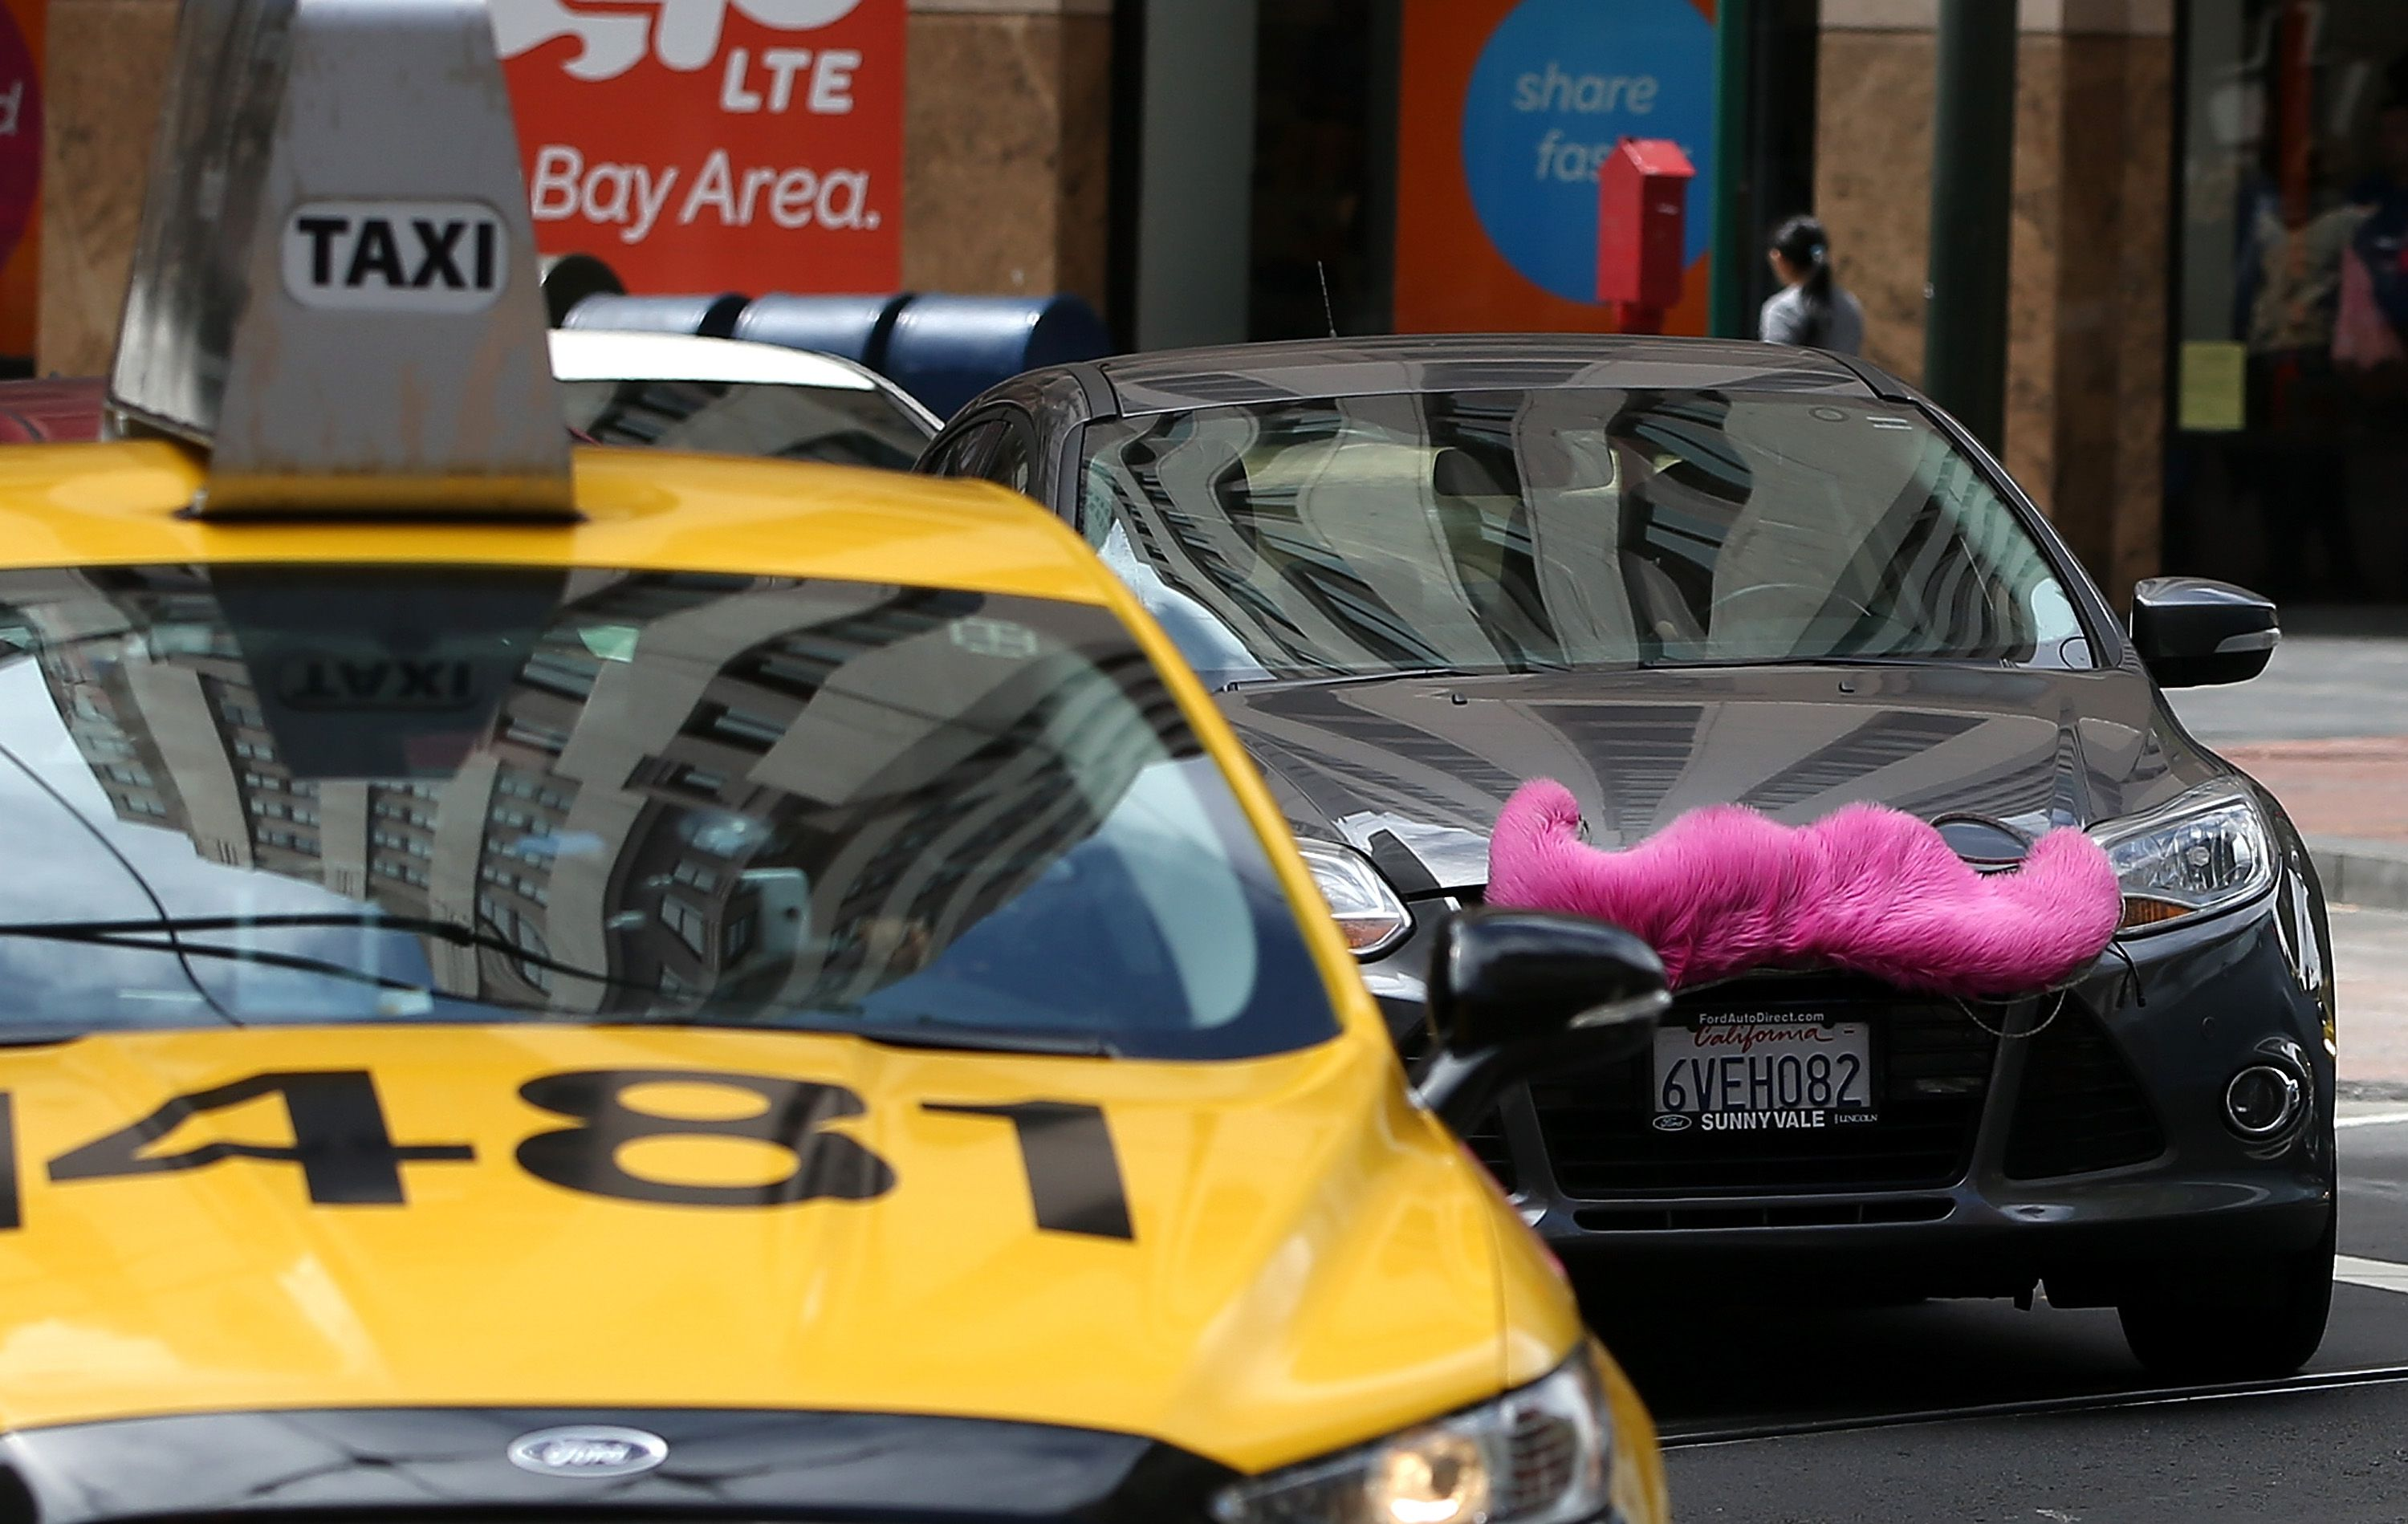 Should You Use Uber or Lyft in Florida?